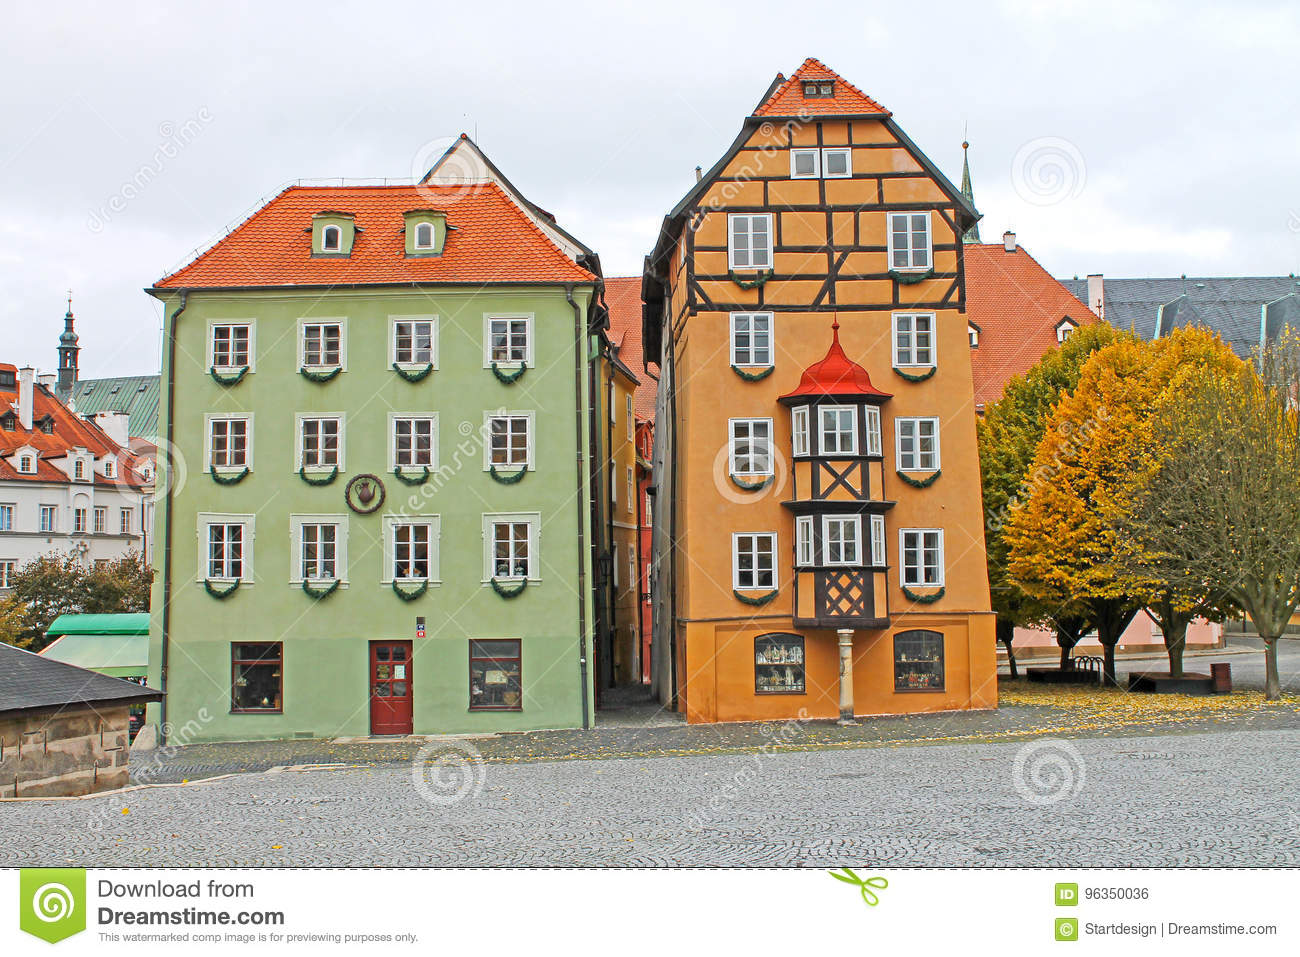 Medieval House Called Spalicek. Market Square In Cheb, Czech Republick.